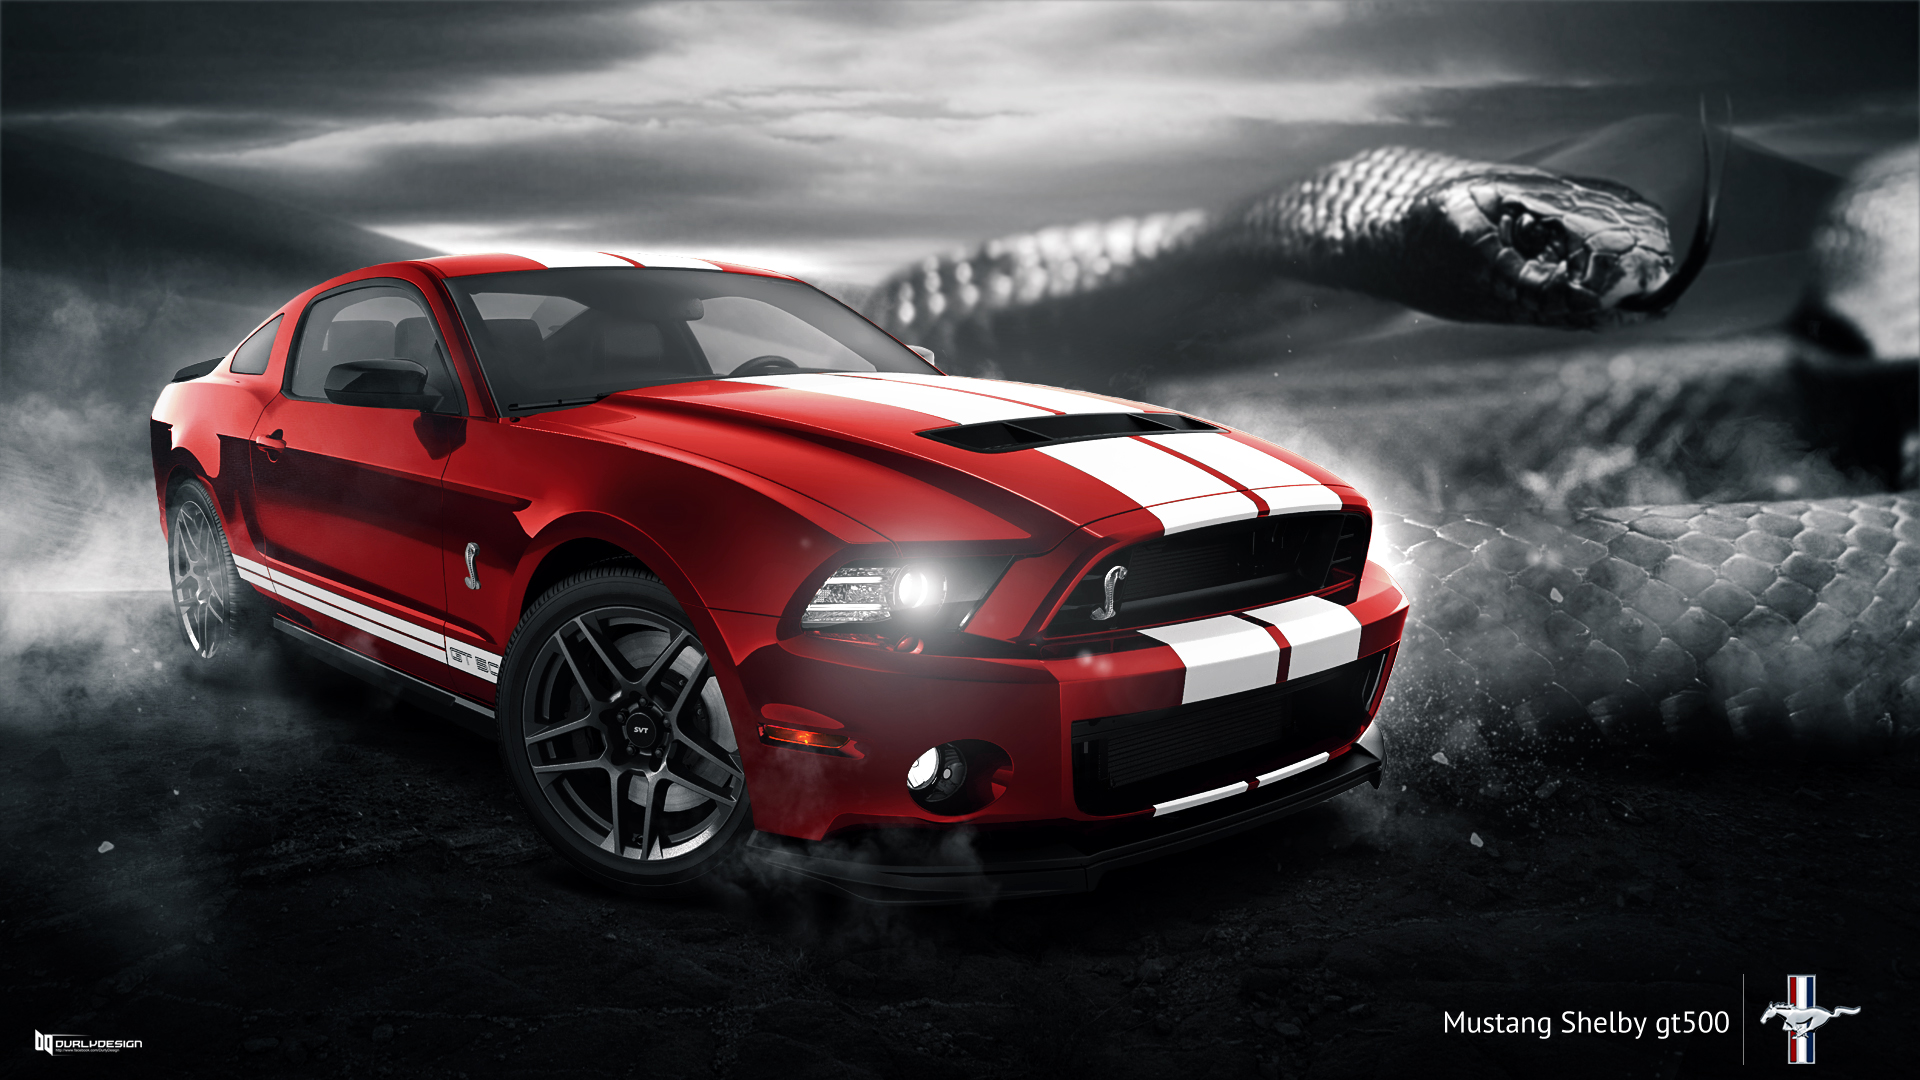 shelby mustang wallpaper - photo #2